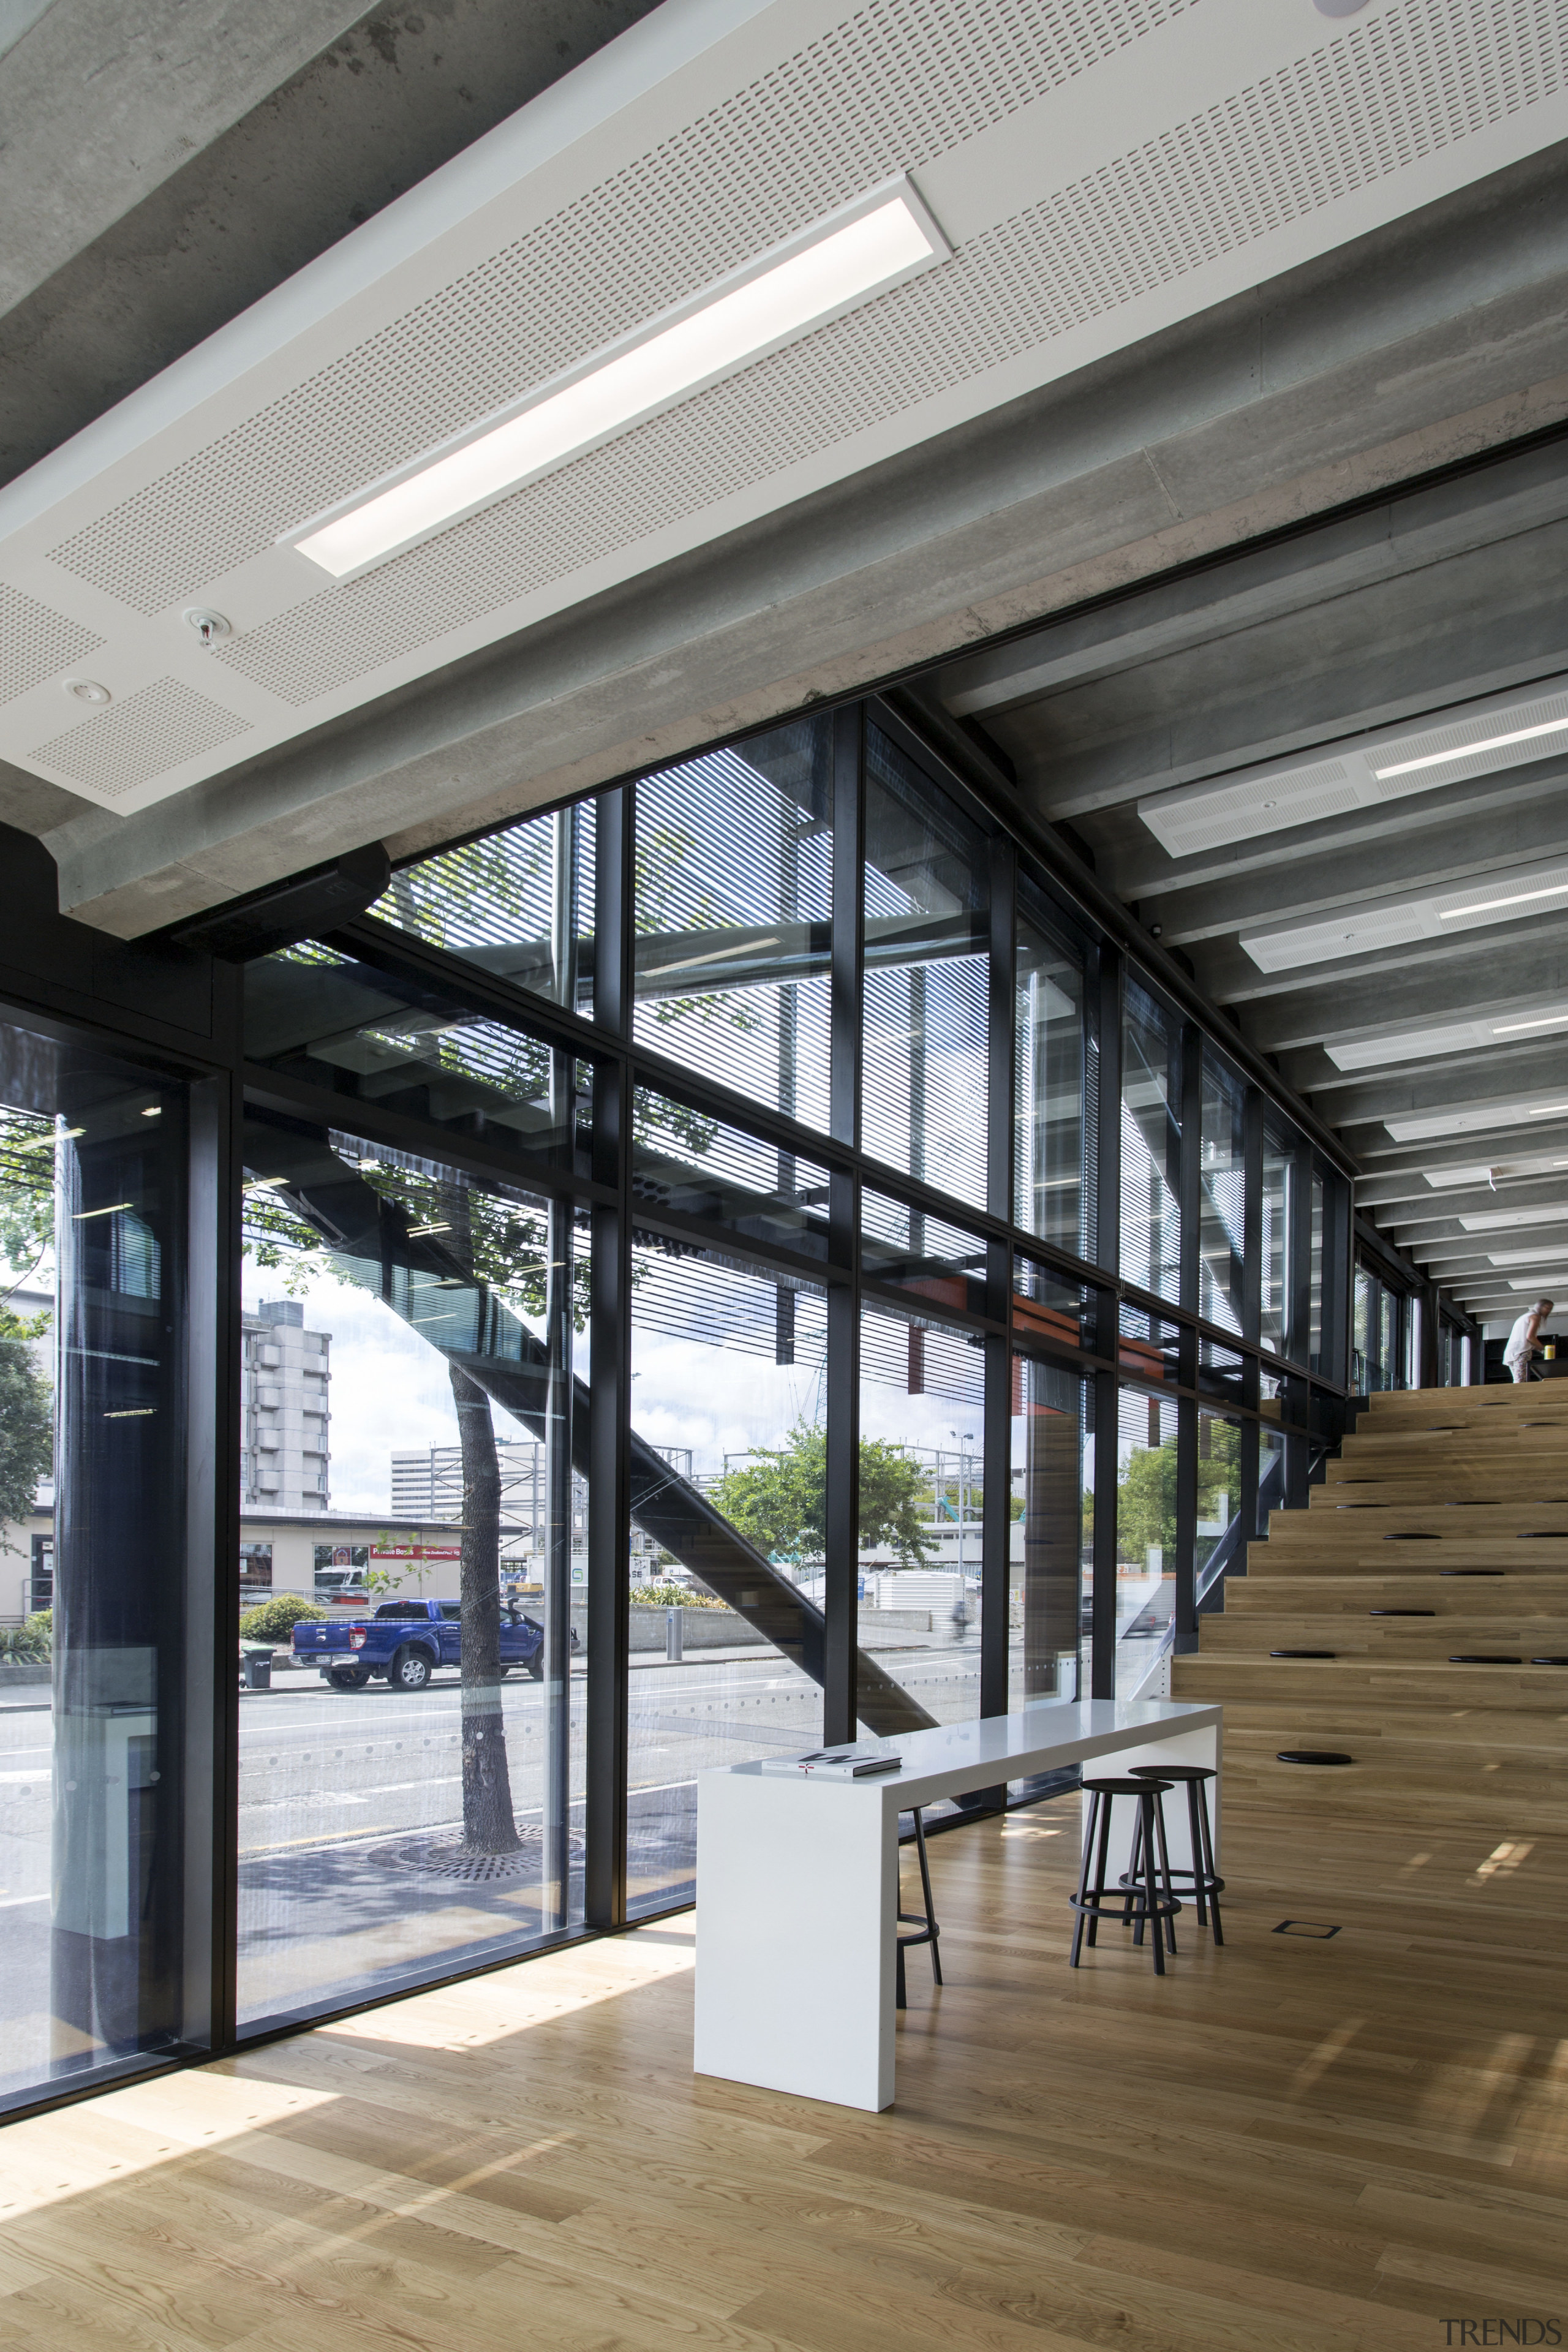 This buildings steel structure is visible from indoors ceiling, daylighting, glass, structure, window, gray